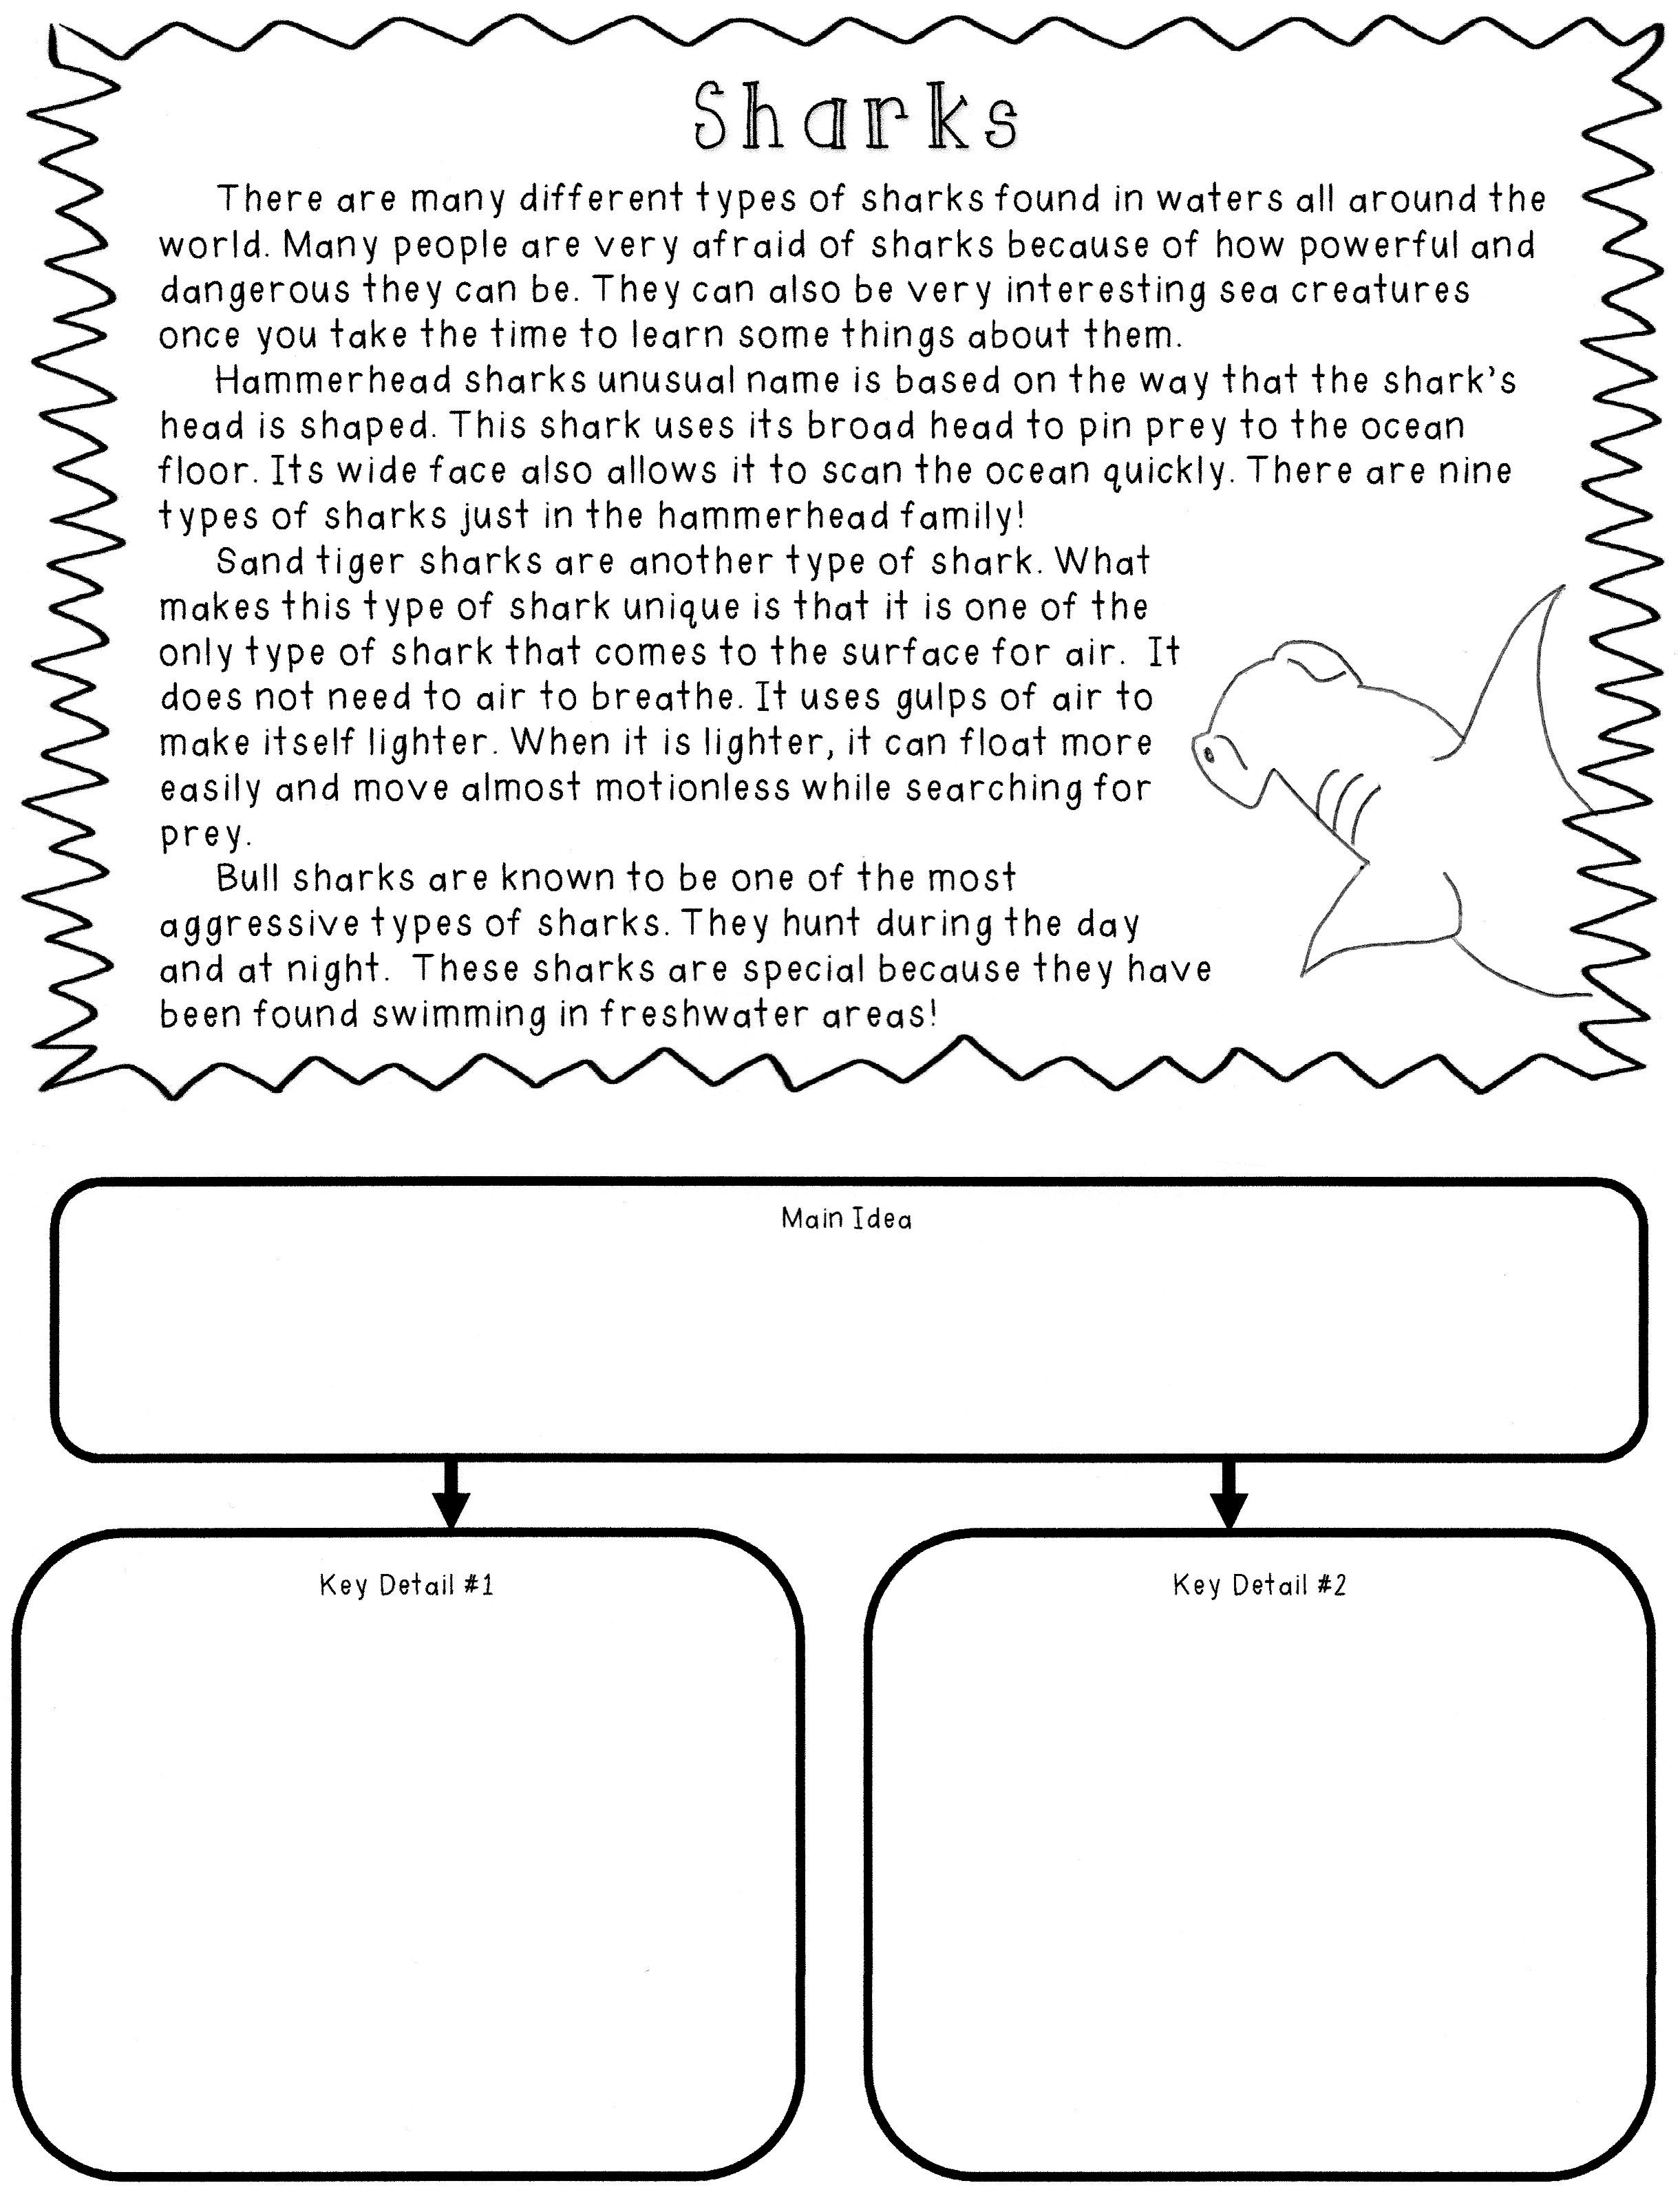 A Great Way To Teach Determining Main Idea And Locating